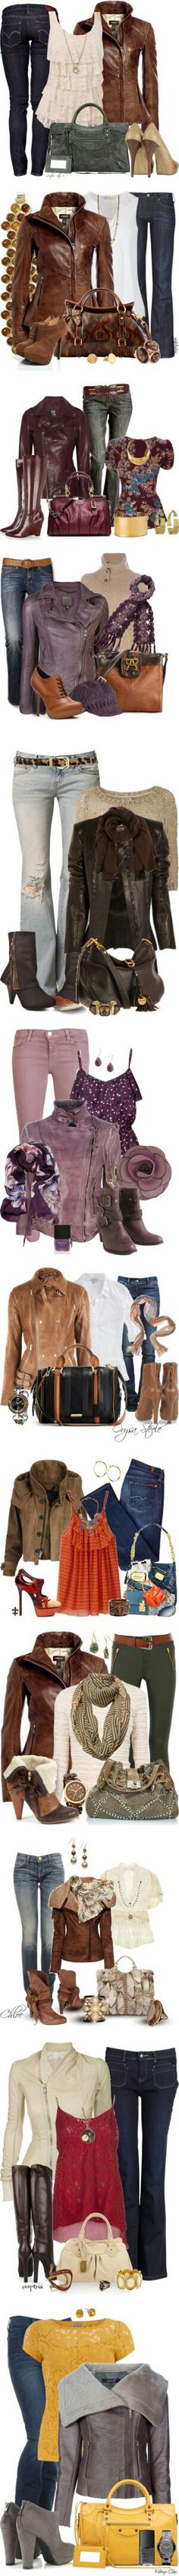 I love leather jackets. Collect ALL the leather jackets! Fall Winter Outfits, Autumn Winter Fashion, Look Fashion, Fashion Outfits, Fashion Trends, Vetements Shoes, Casual Mode, Casual Outfits, Cute Outfits